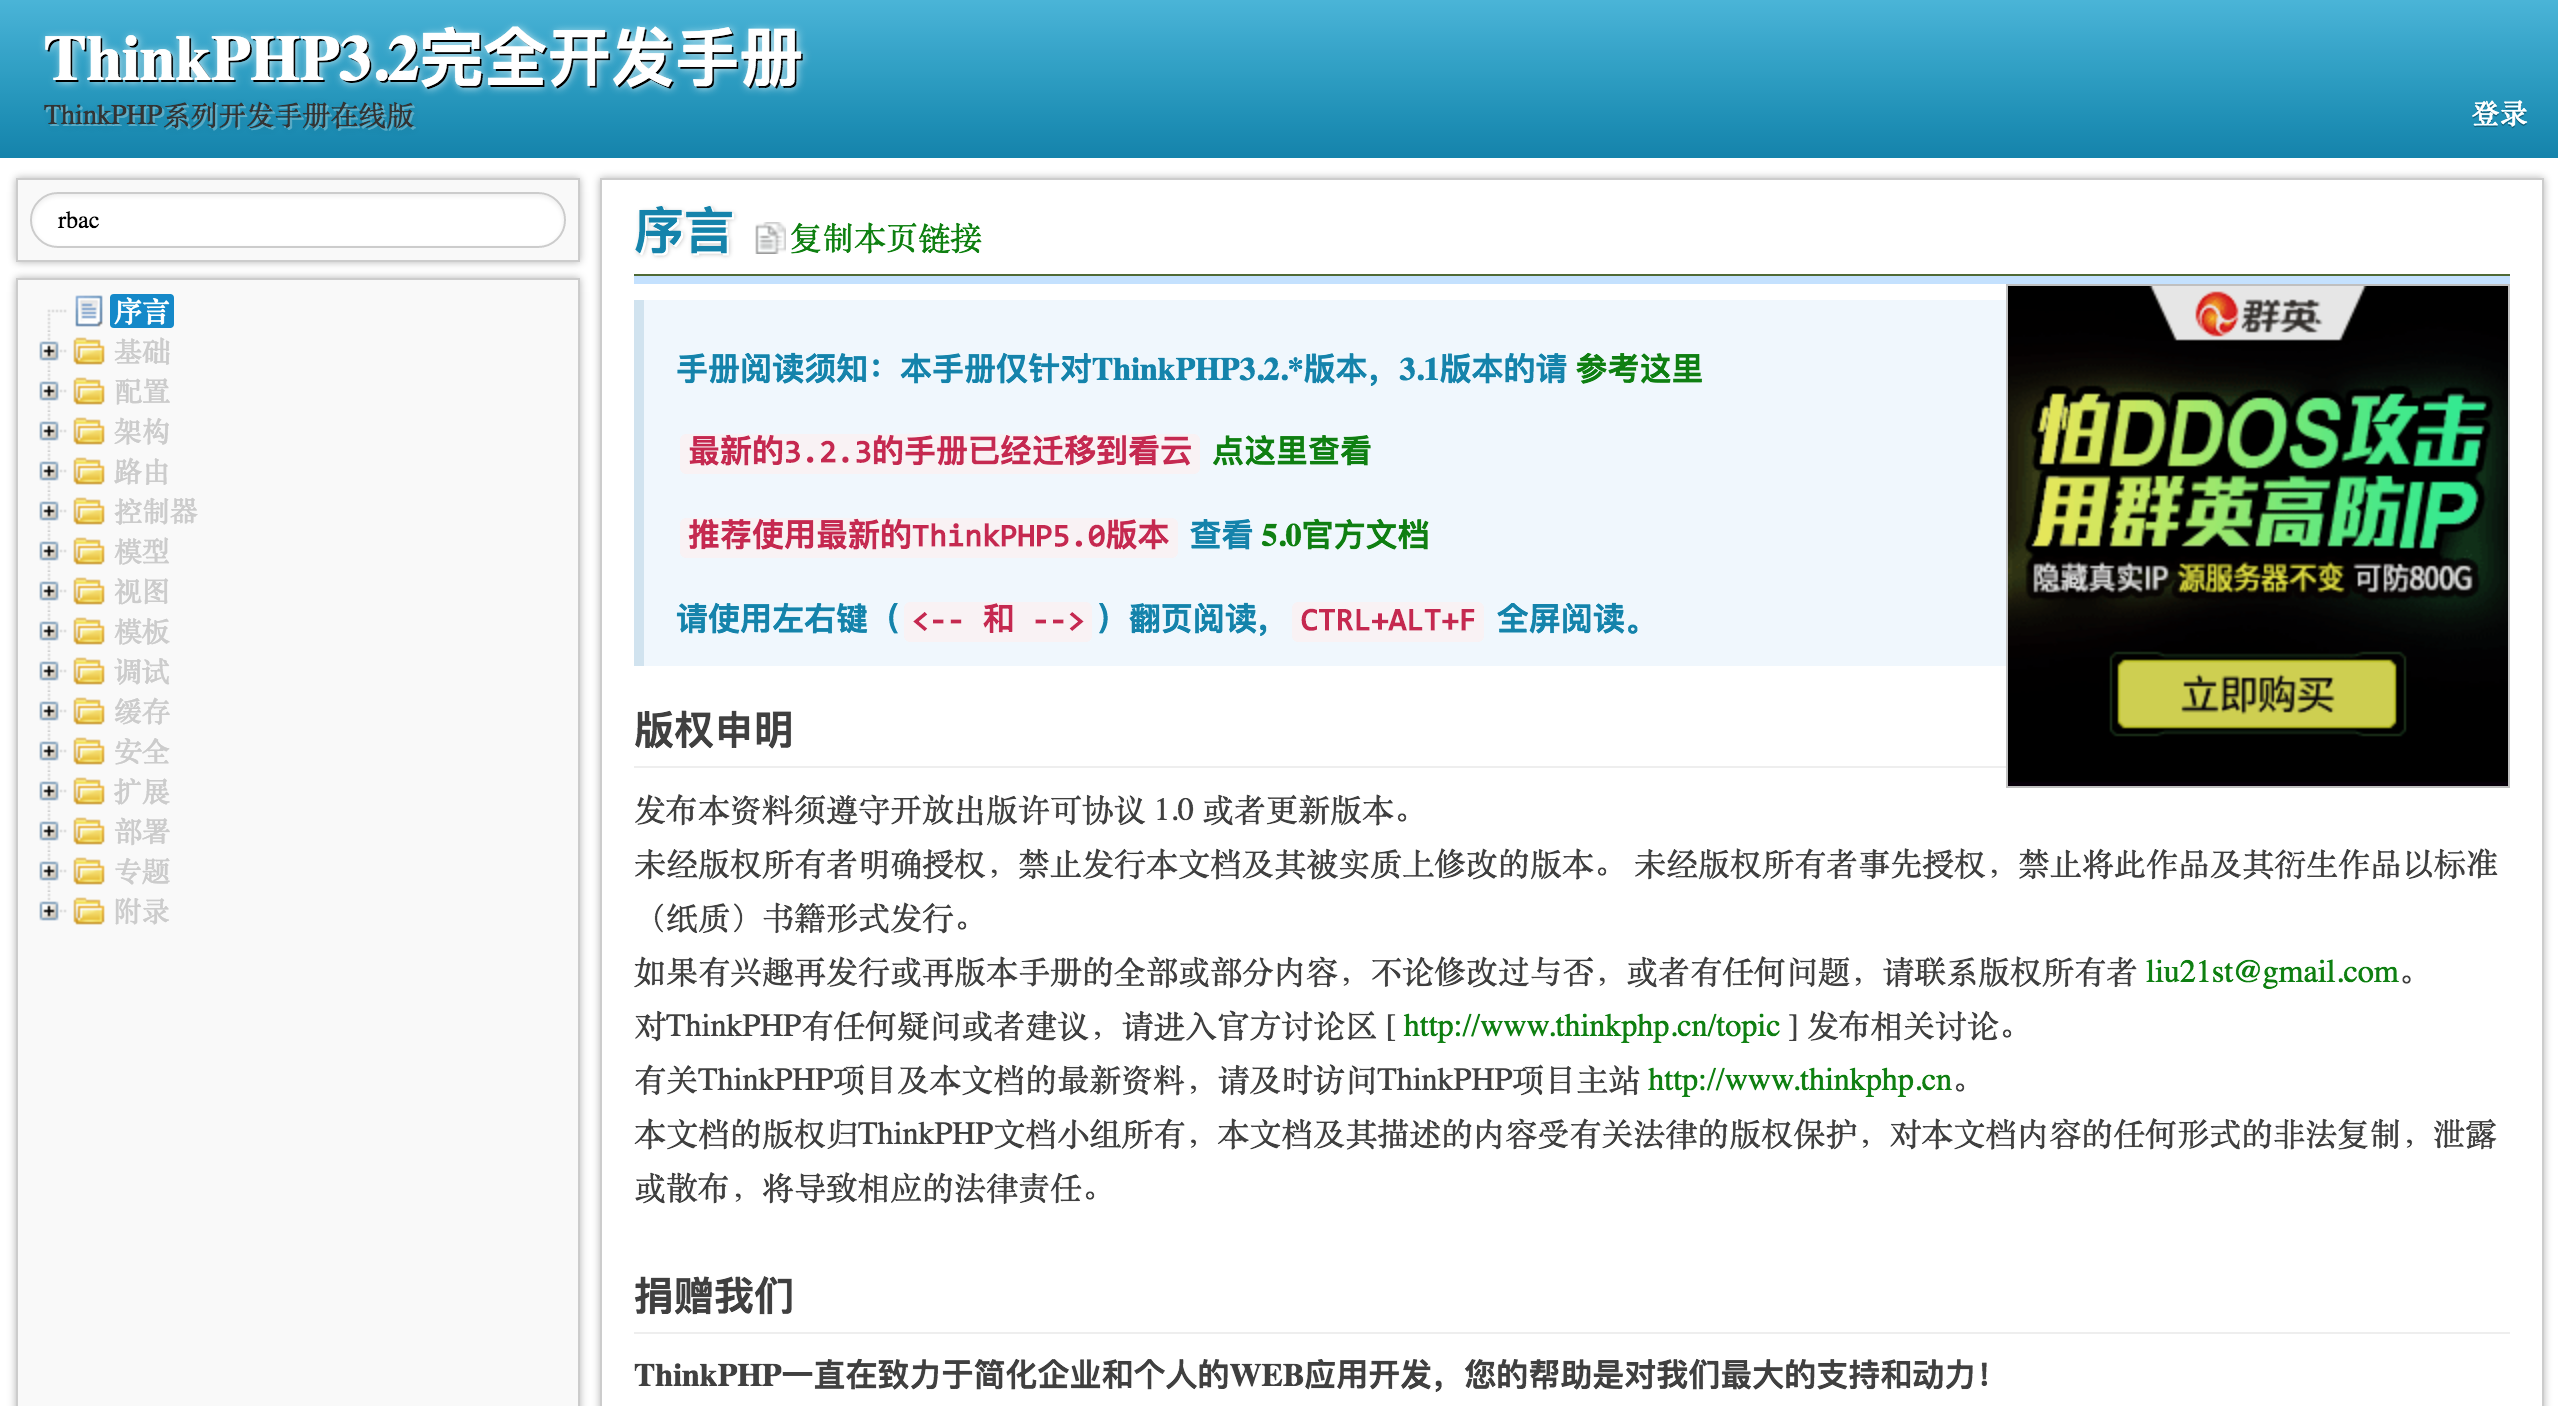 http://document.thinkphp.cn/manual_3_2.html#preface